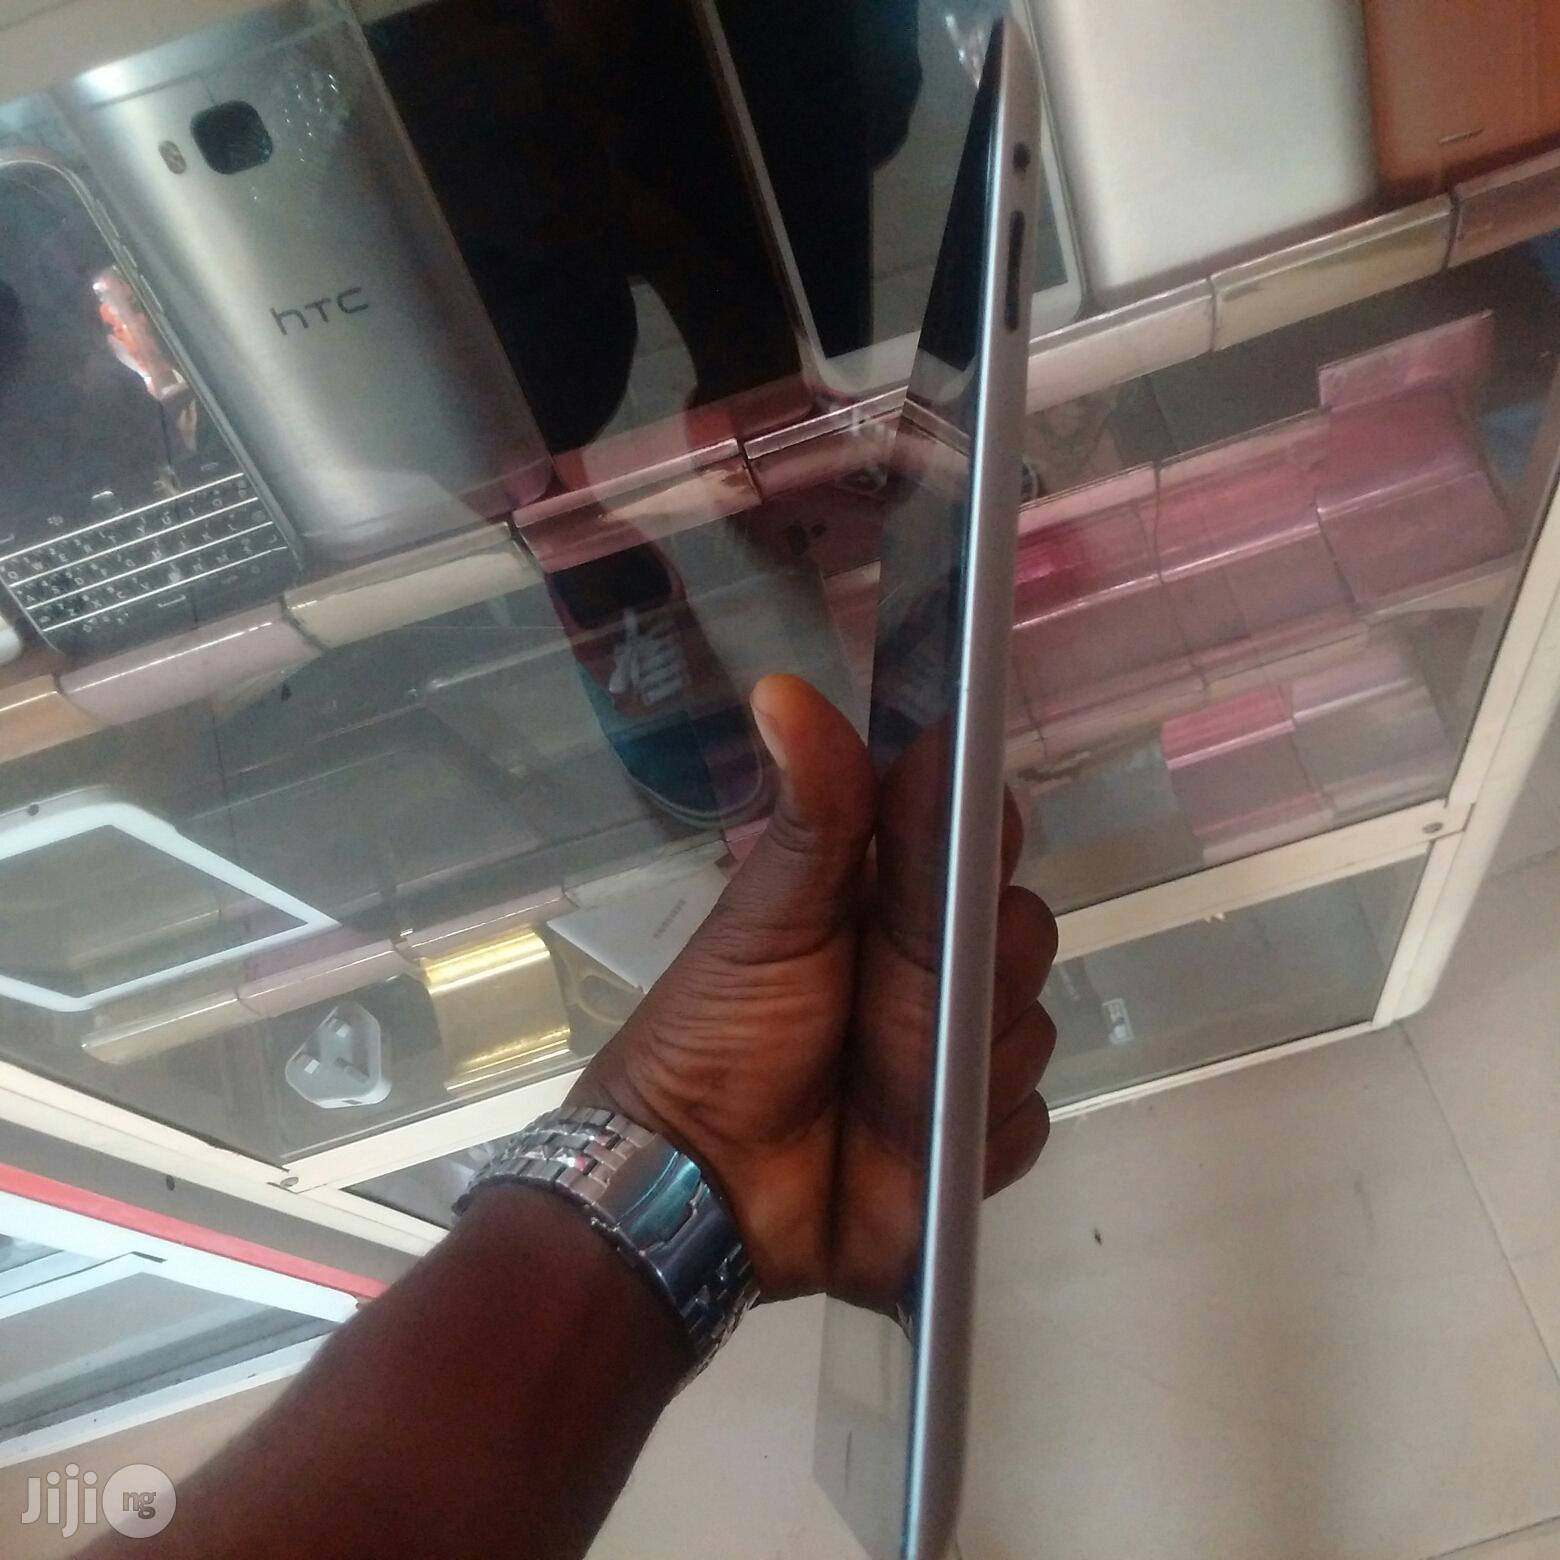 Apple iPad 4 Wi-Fi Cellular 16 GB | Tablets for sale in Ikeja, Lagos State, Nigeria